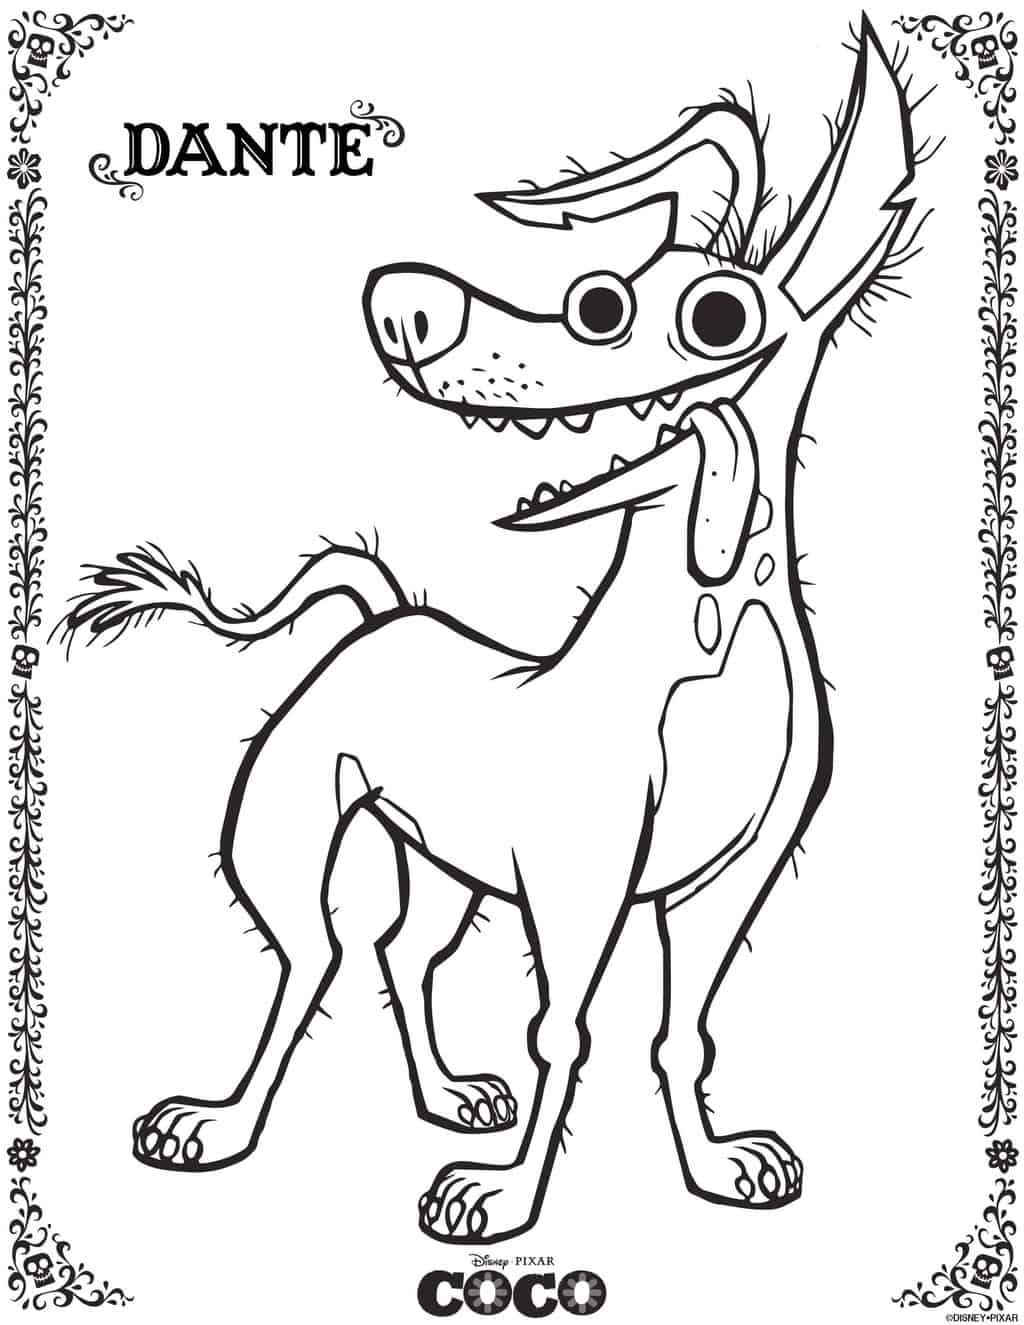 Disney•Pixar's COCO Coloring Pages and Activity Sheets